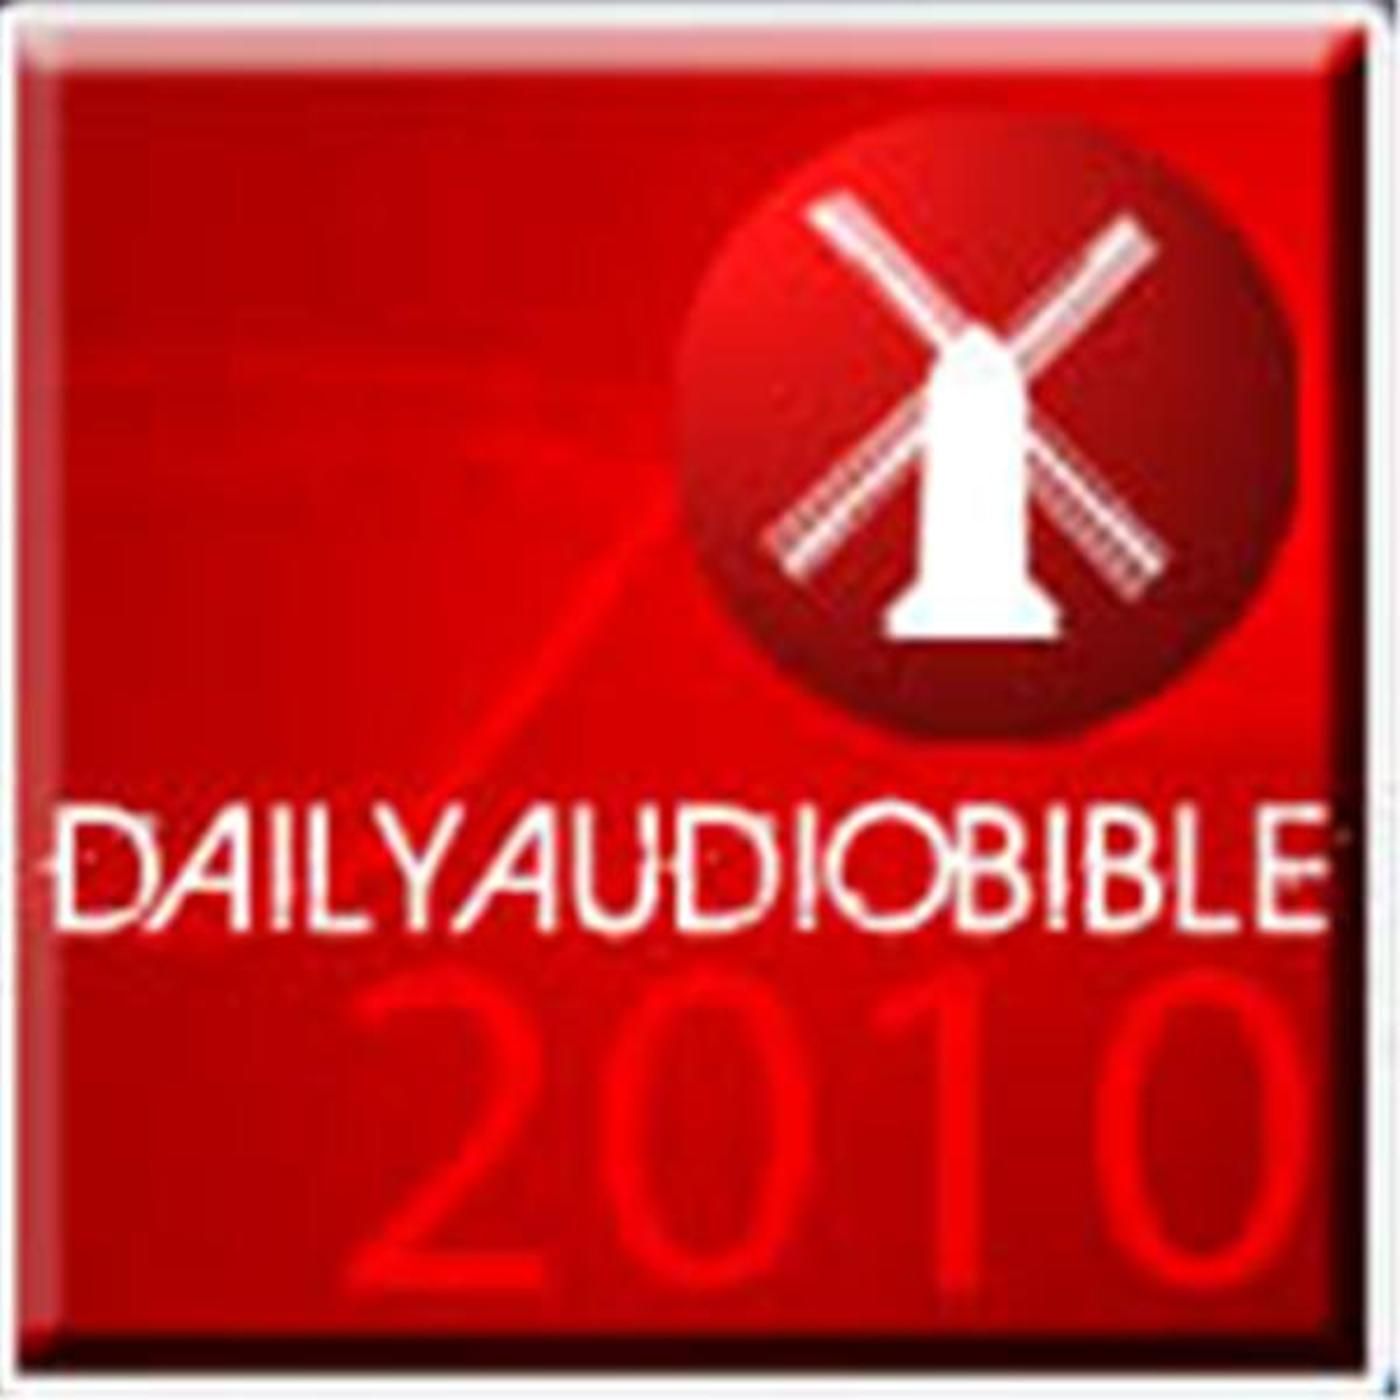 Daily Audio Bible